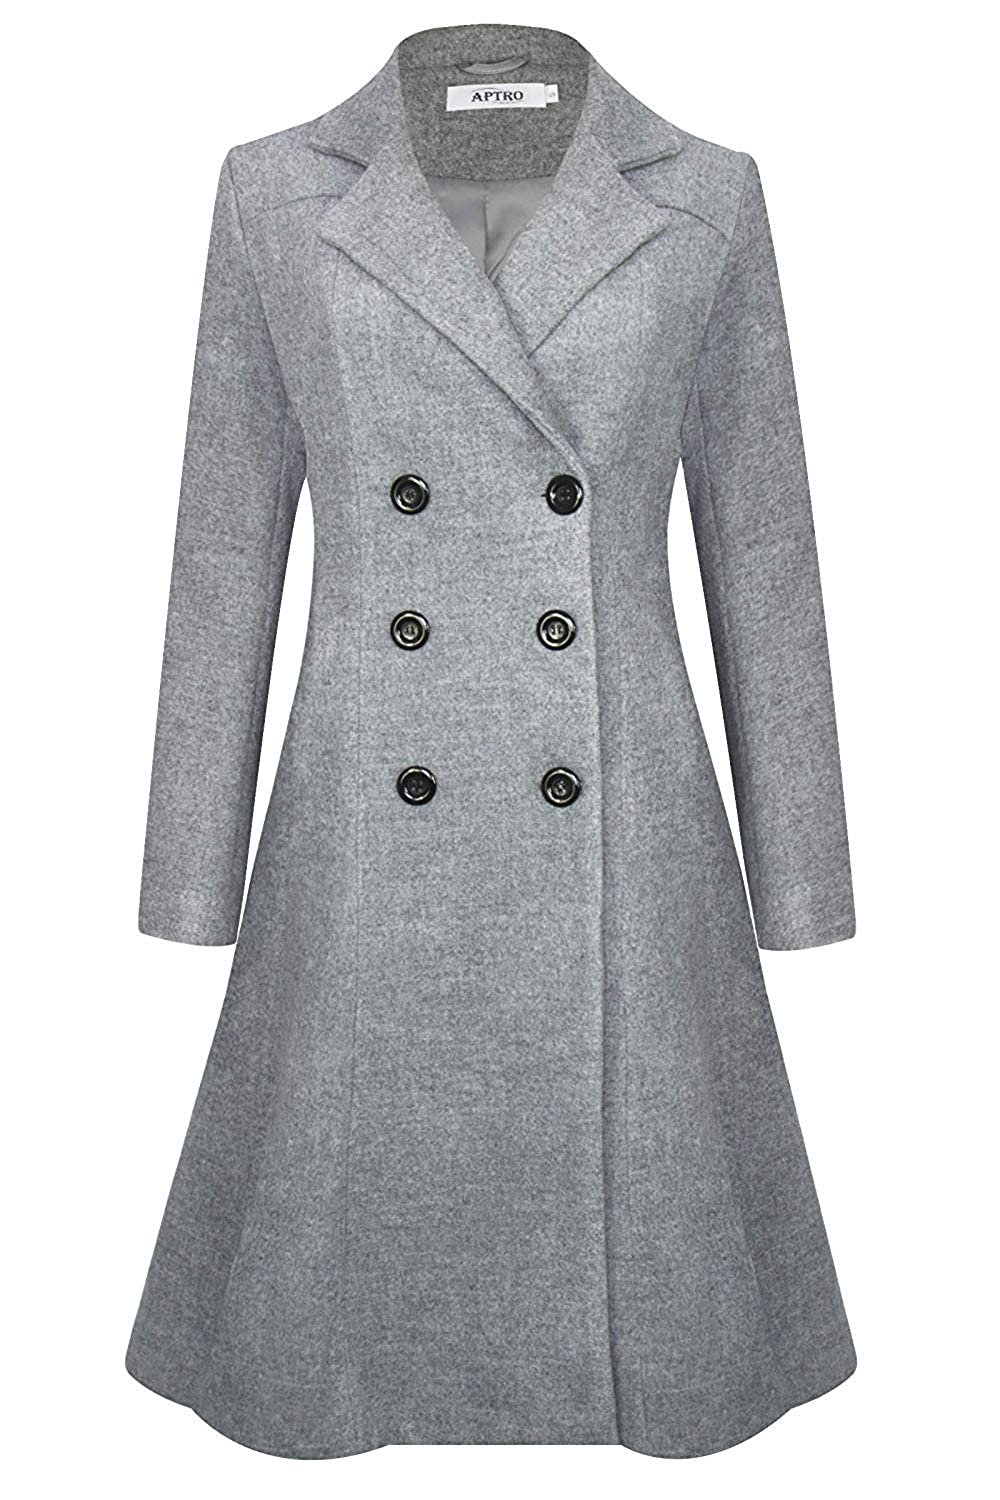 Vintage Coats & Jackets | Retro Coats and Jackets APTRO Womens Winter Wool Trench Coat Double Breasted Long Pea Coat $86.94 AT vintagedancer.com